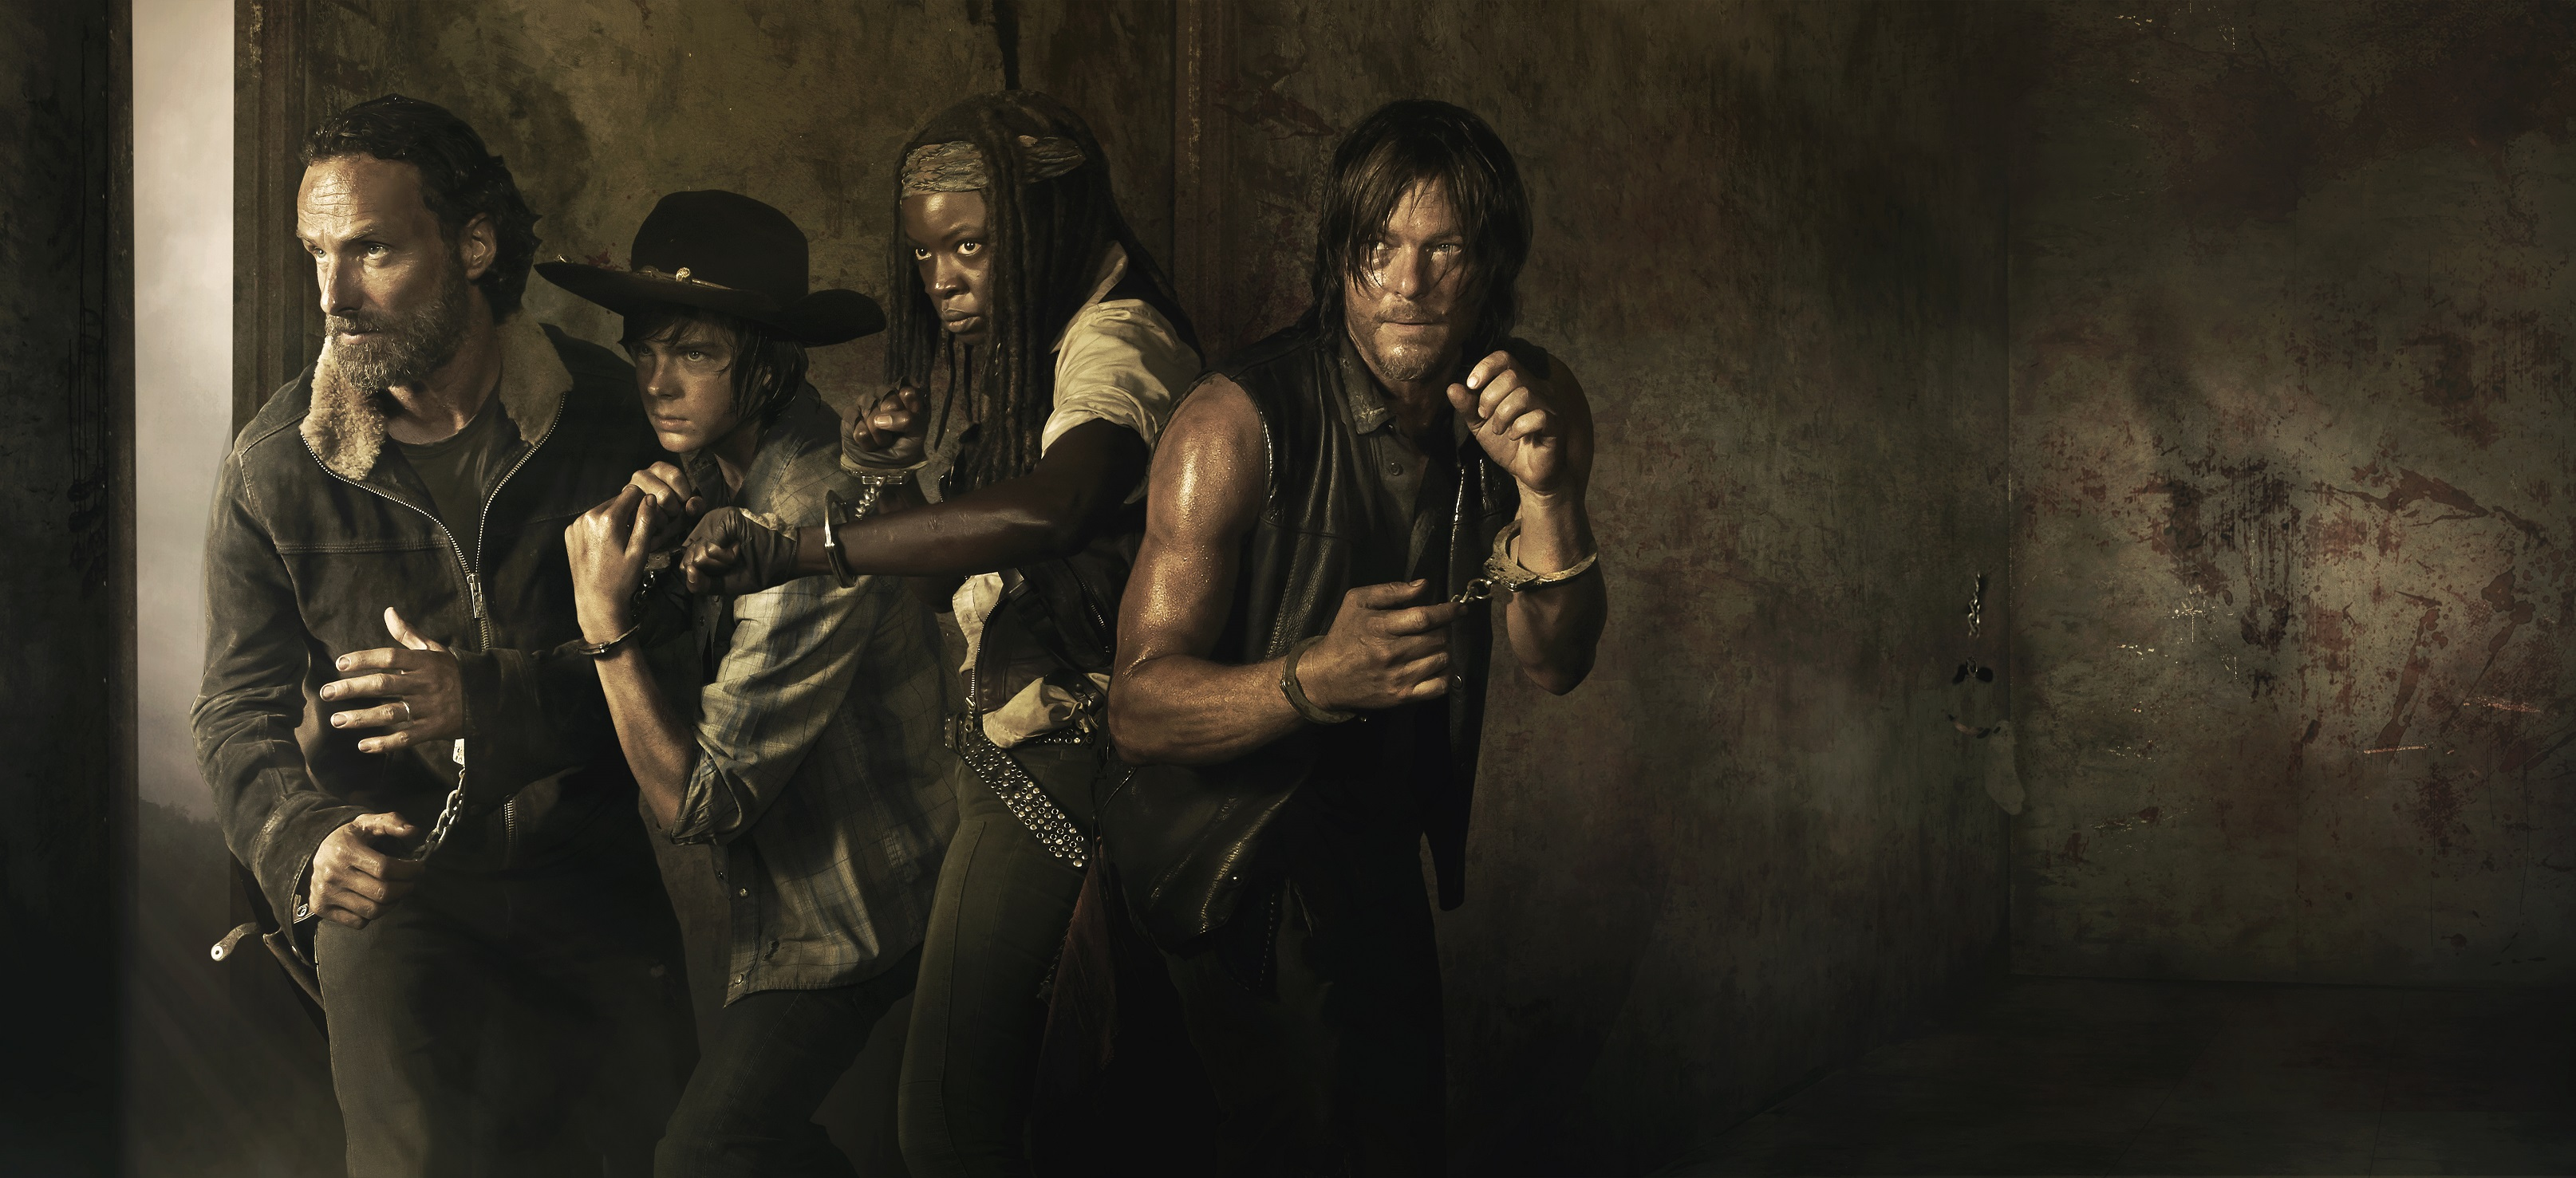 FOX-Sleepy Hollow-The Walking Dead-03FEVEREIRO2015-01